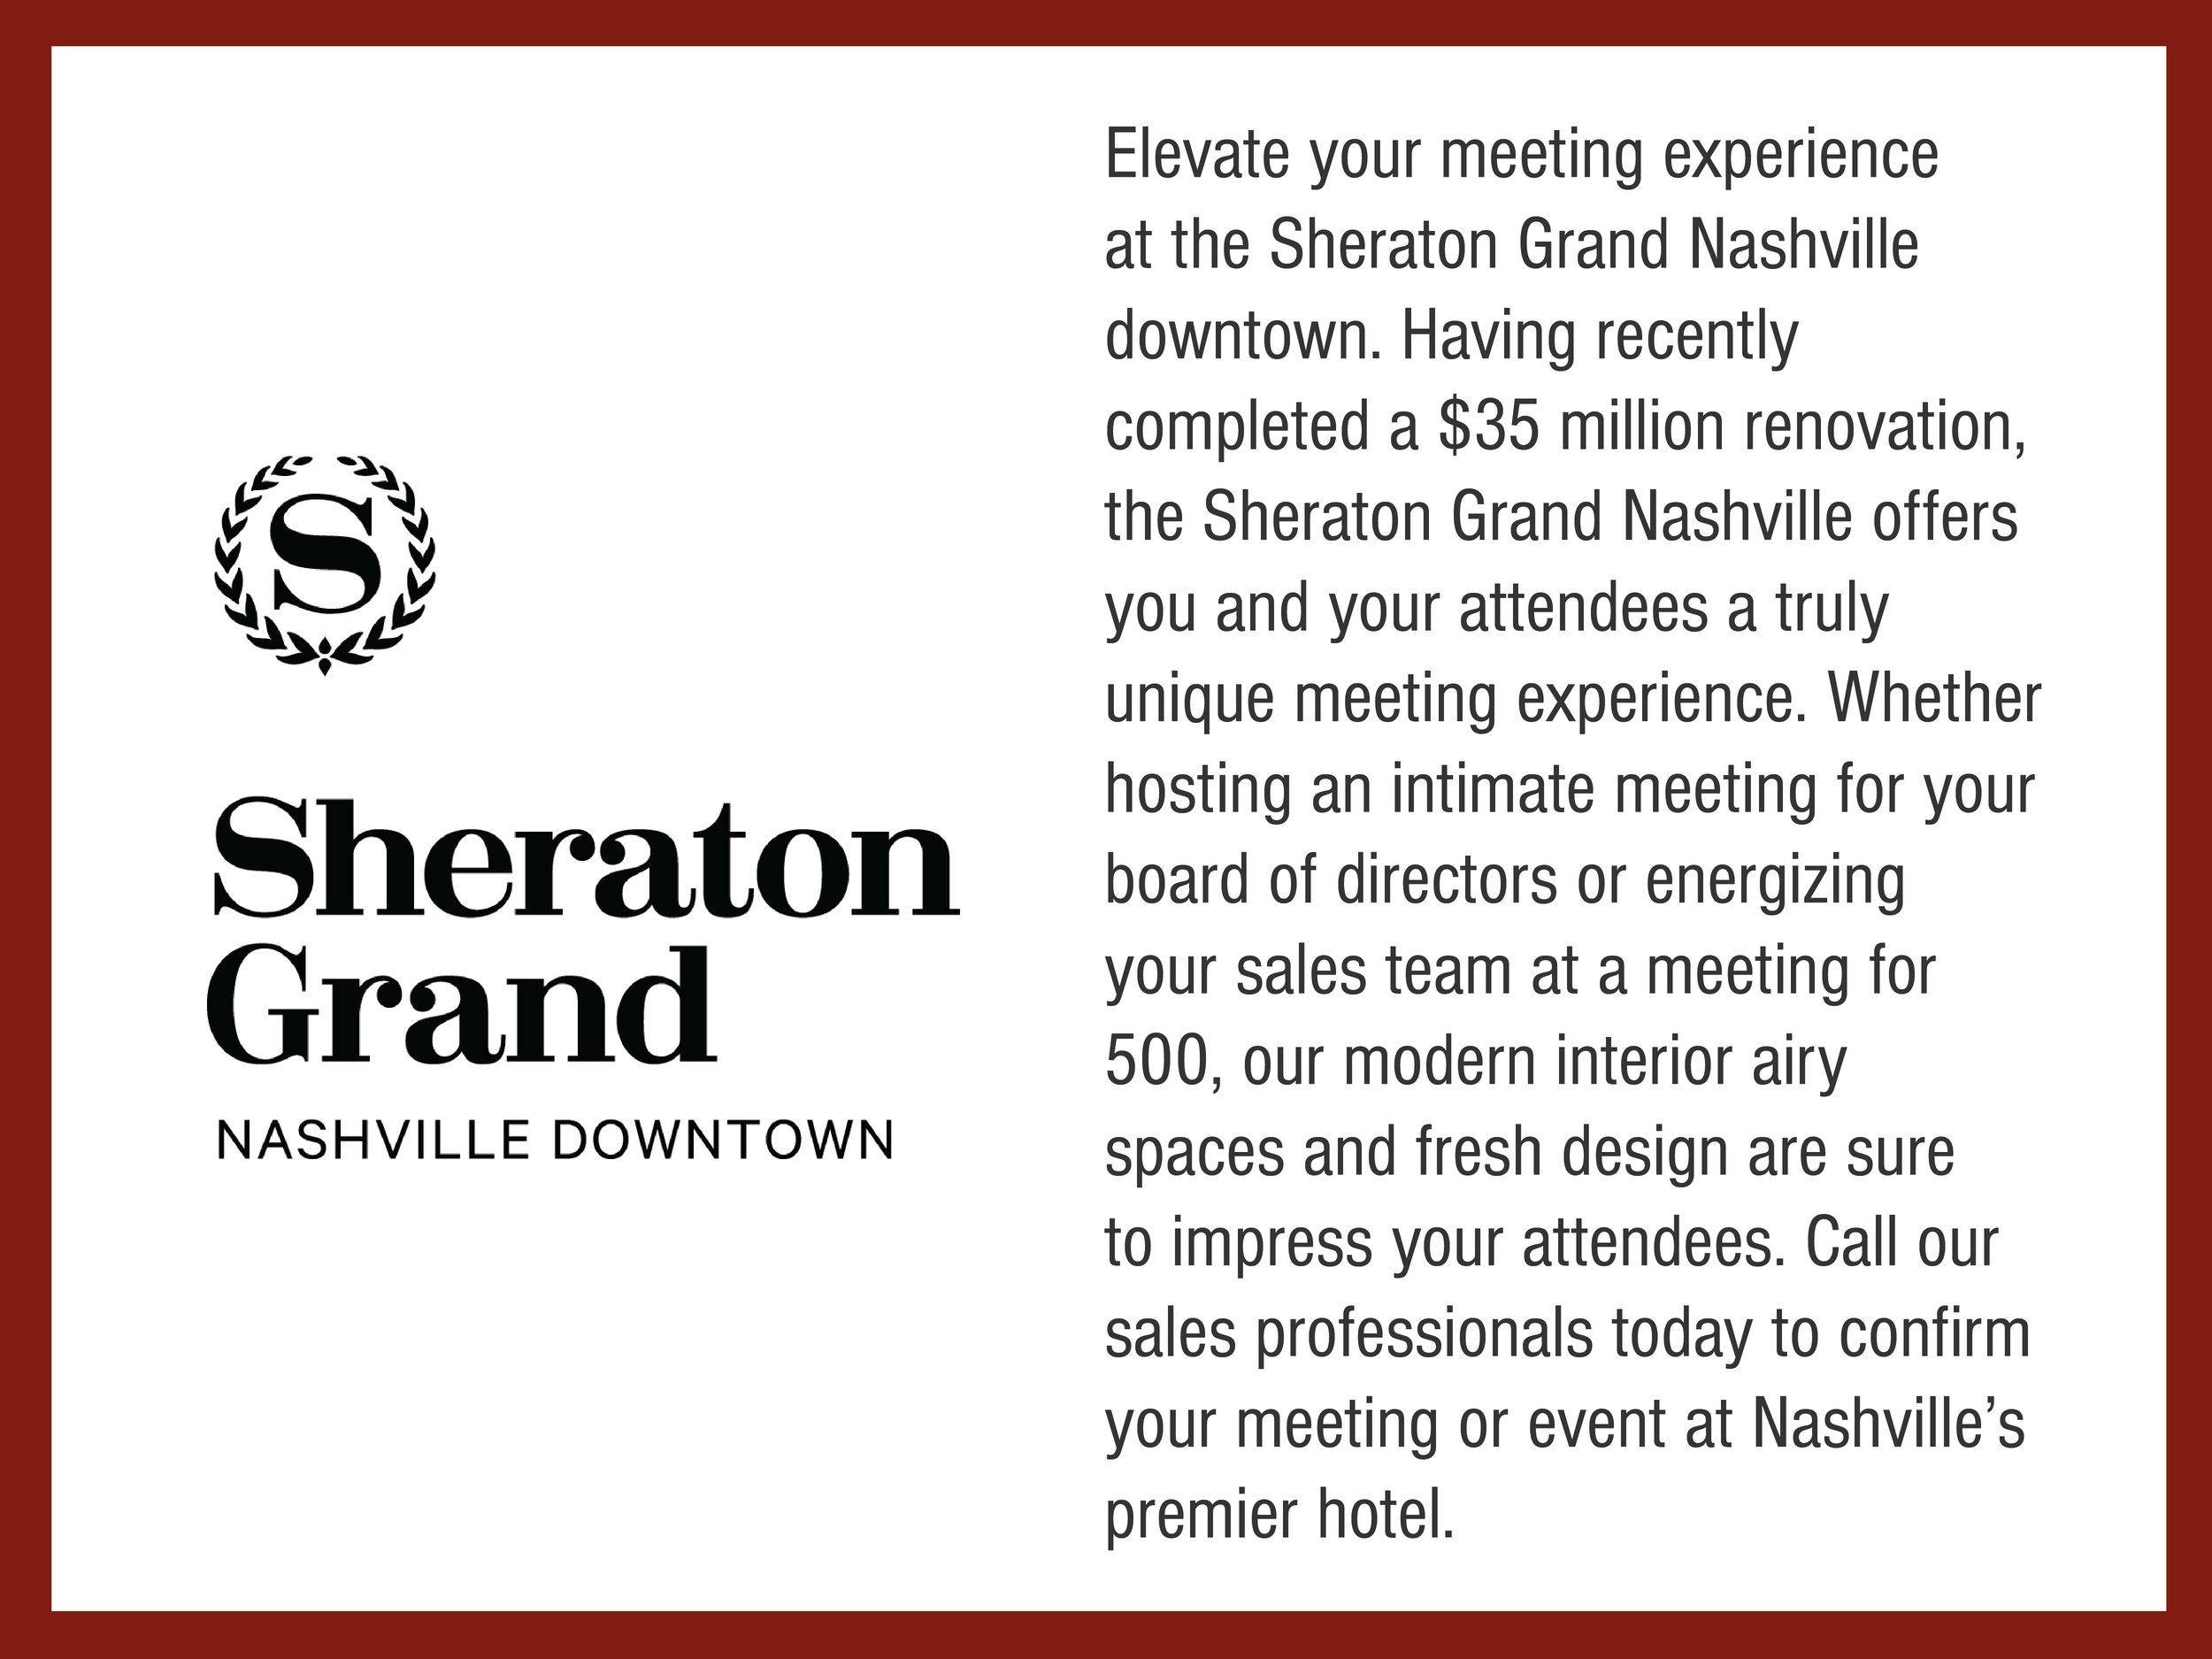 Sheraton_Nash_Downtown_Popup.jpg